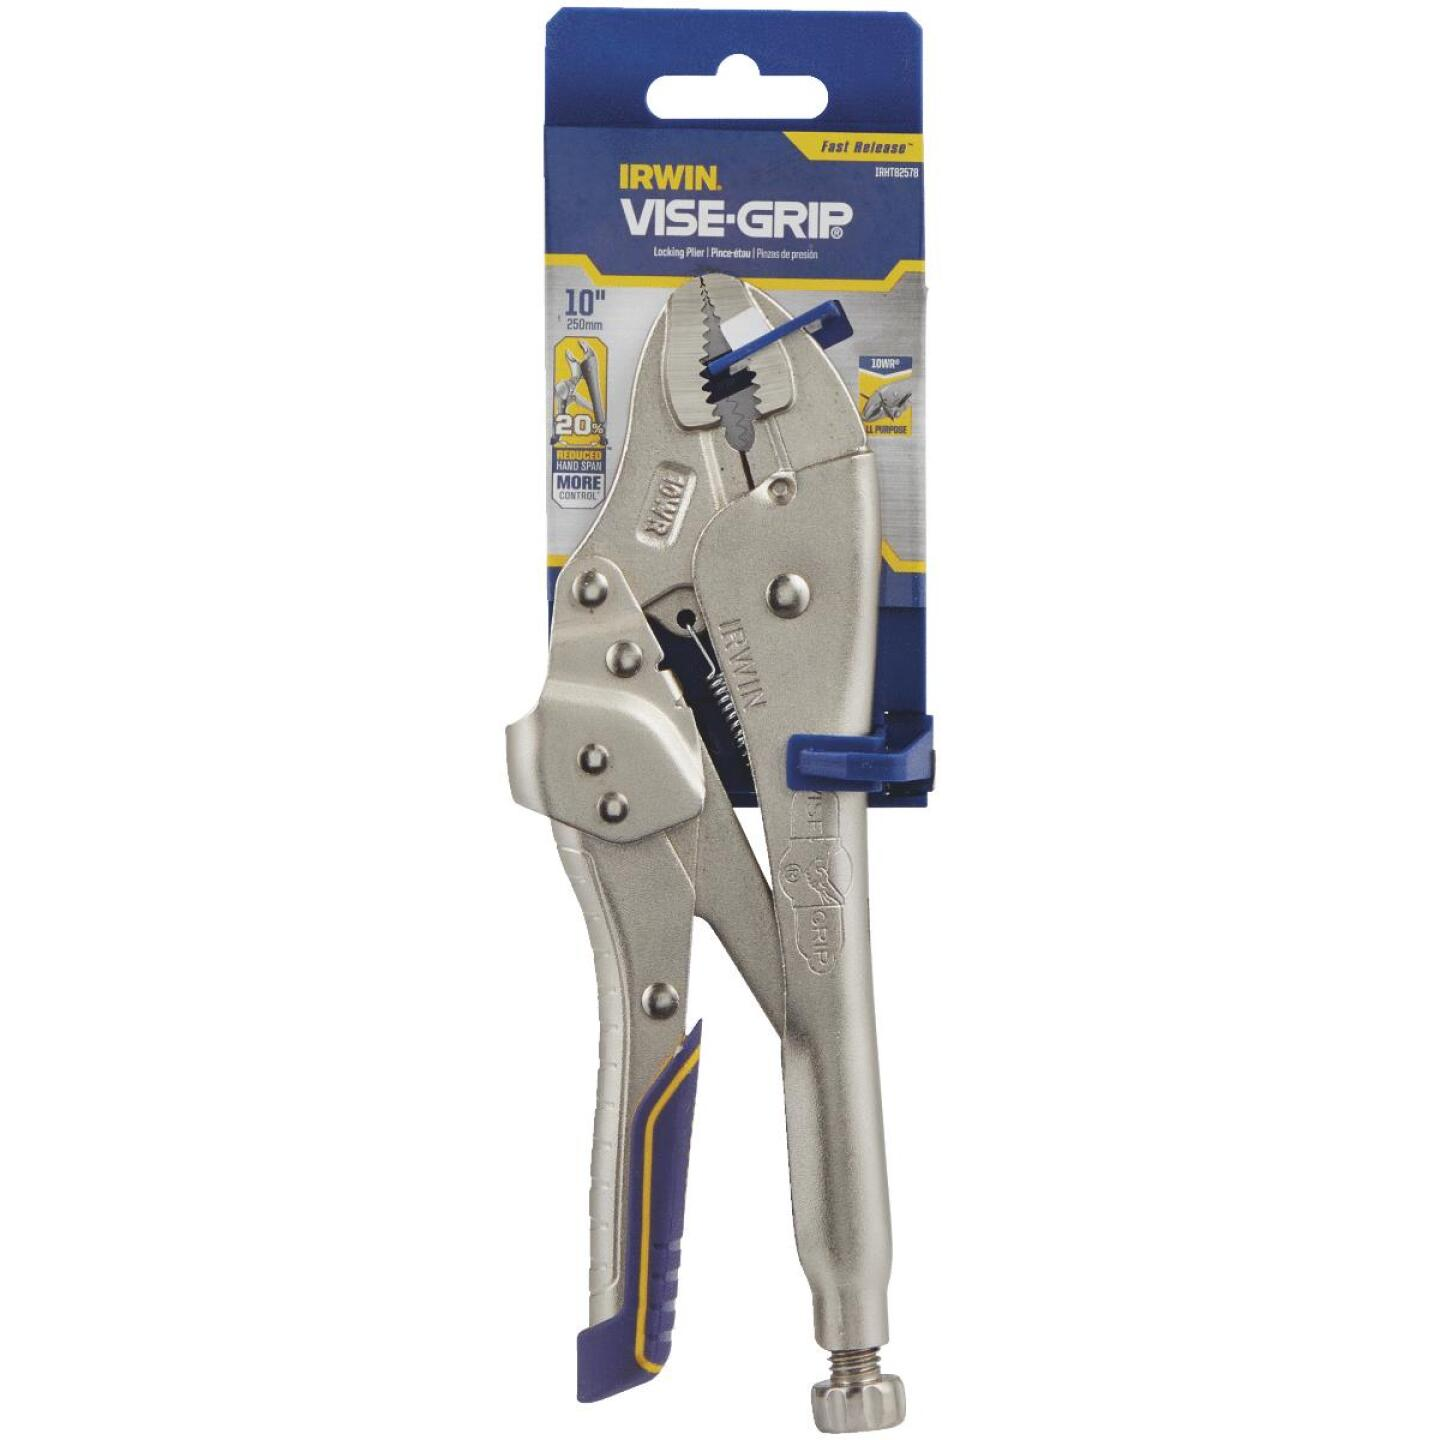 Irwin Vise-Grip Fast Release 10 In. Curved Jaw Locking Pliers Image 2